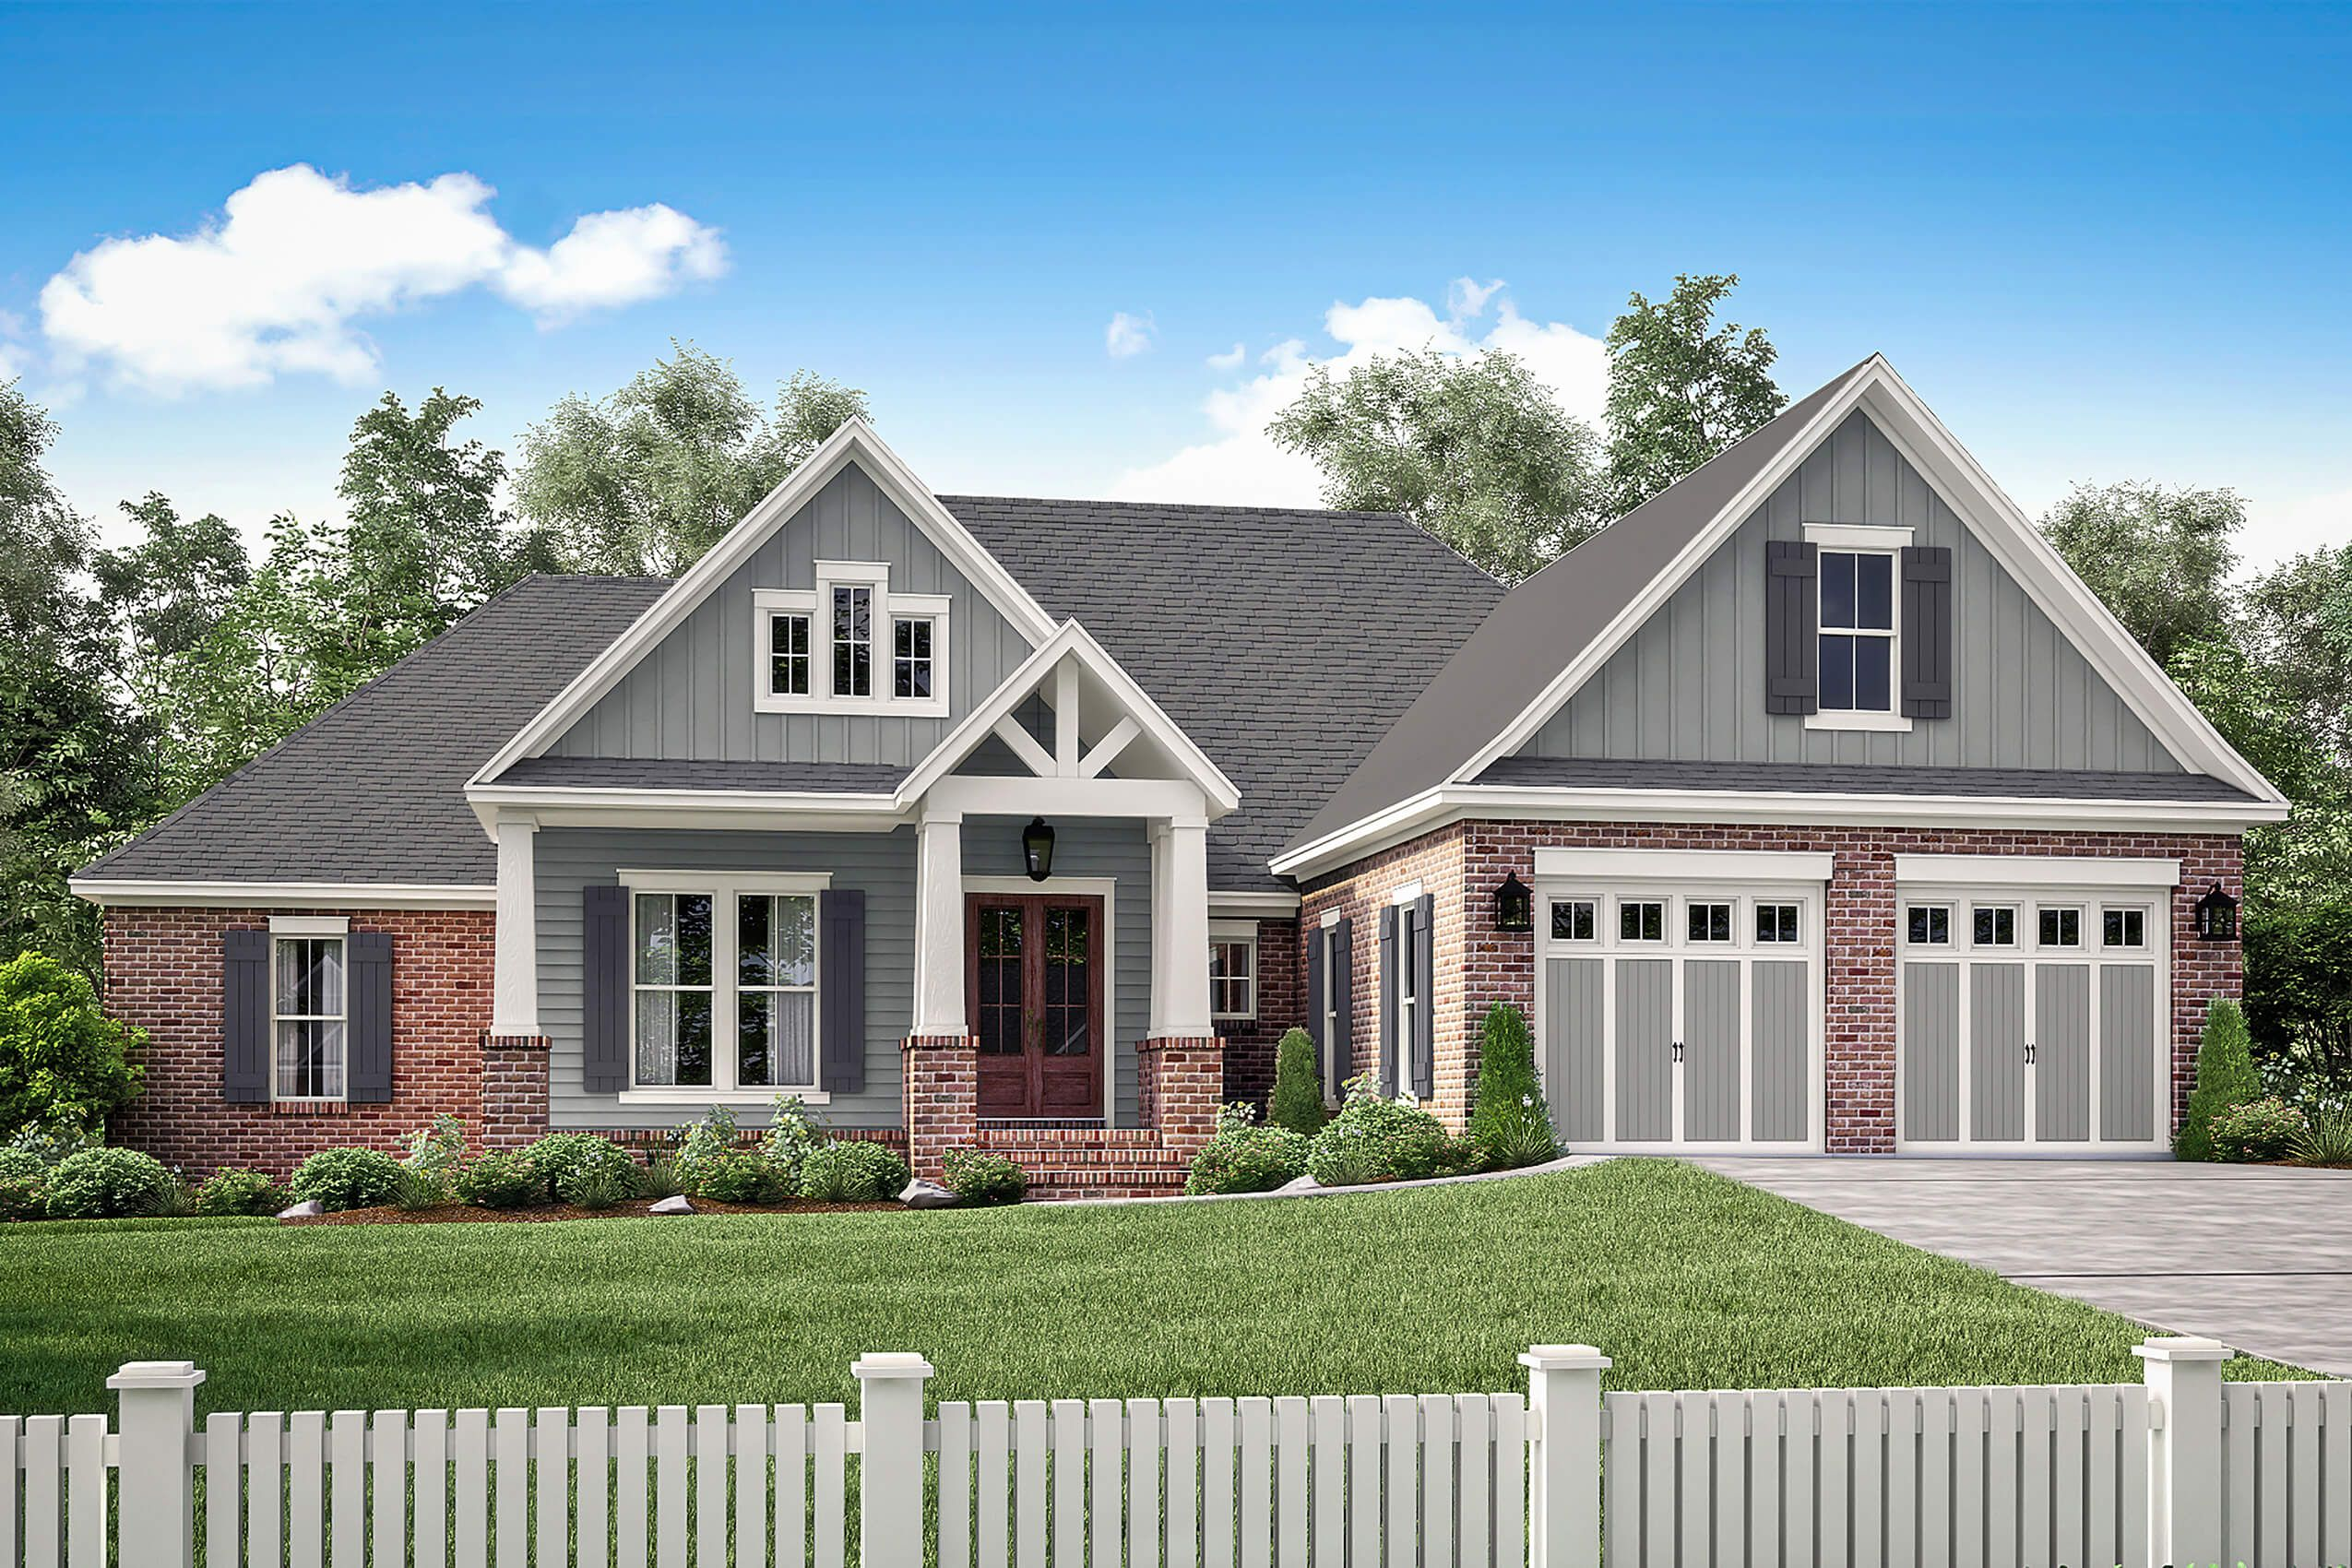 Small house plan home plan 142 - Front Elevation Of Craftsman Home Theplancollection House Plan 142 1173